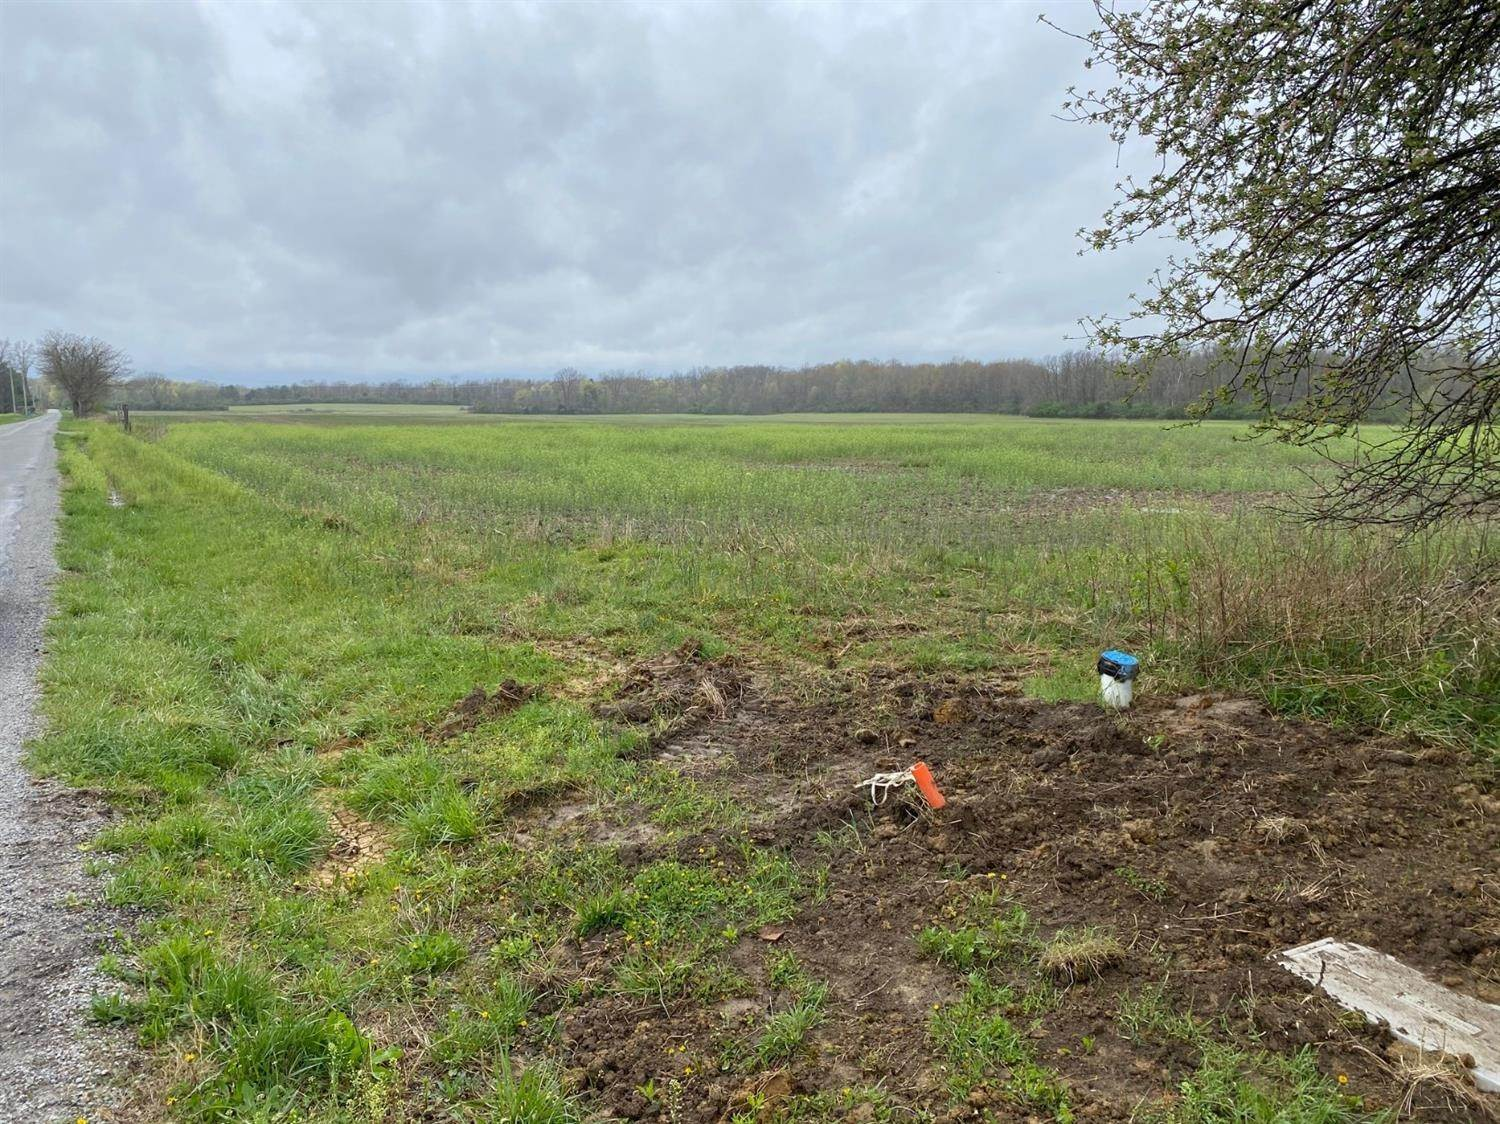 Acreage for Sale at Henry Plummert Road Harlan Township, Ohio 45107 United States